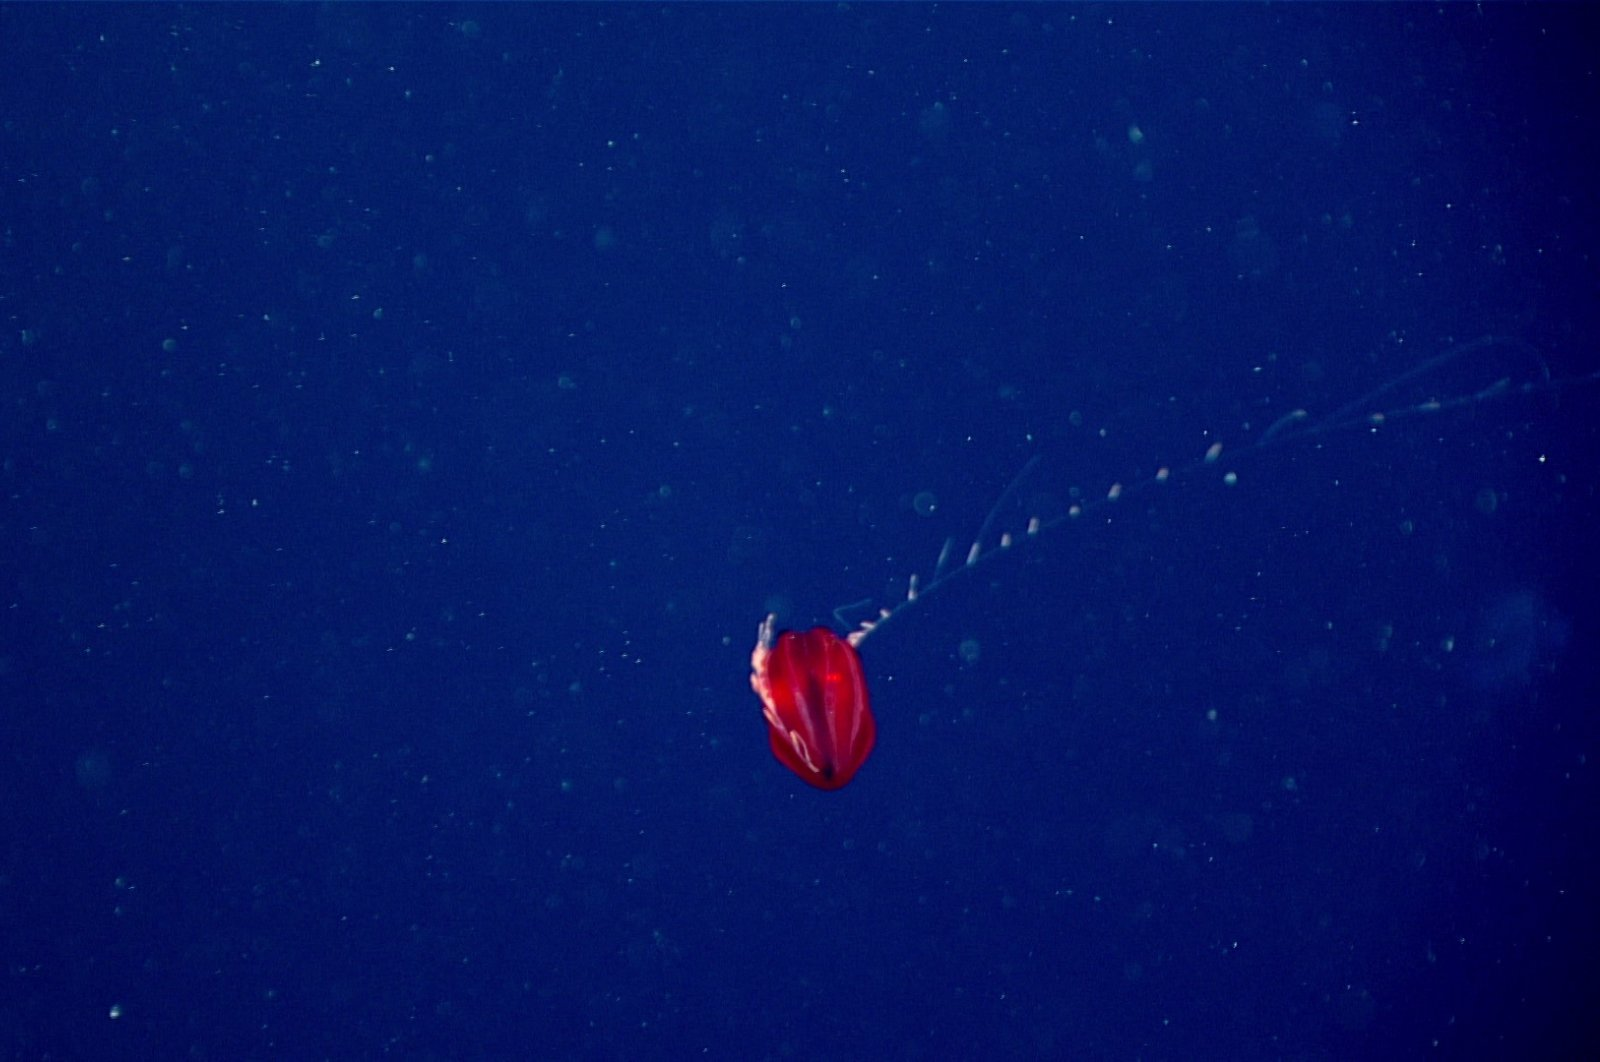 This red ctenophore in the genus Vampyroctena was seen at a depth of 700 meters (2,297 feet) during Dive 20 of the 2021 North Atlantic Stepping Stones expedition. (Photo courtesy of NOAA Ocean Exploration, 2021 North Atlantic Stepping Stones: New England and Corner Rise Seamounts)